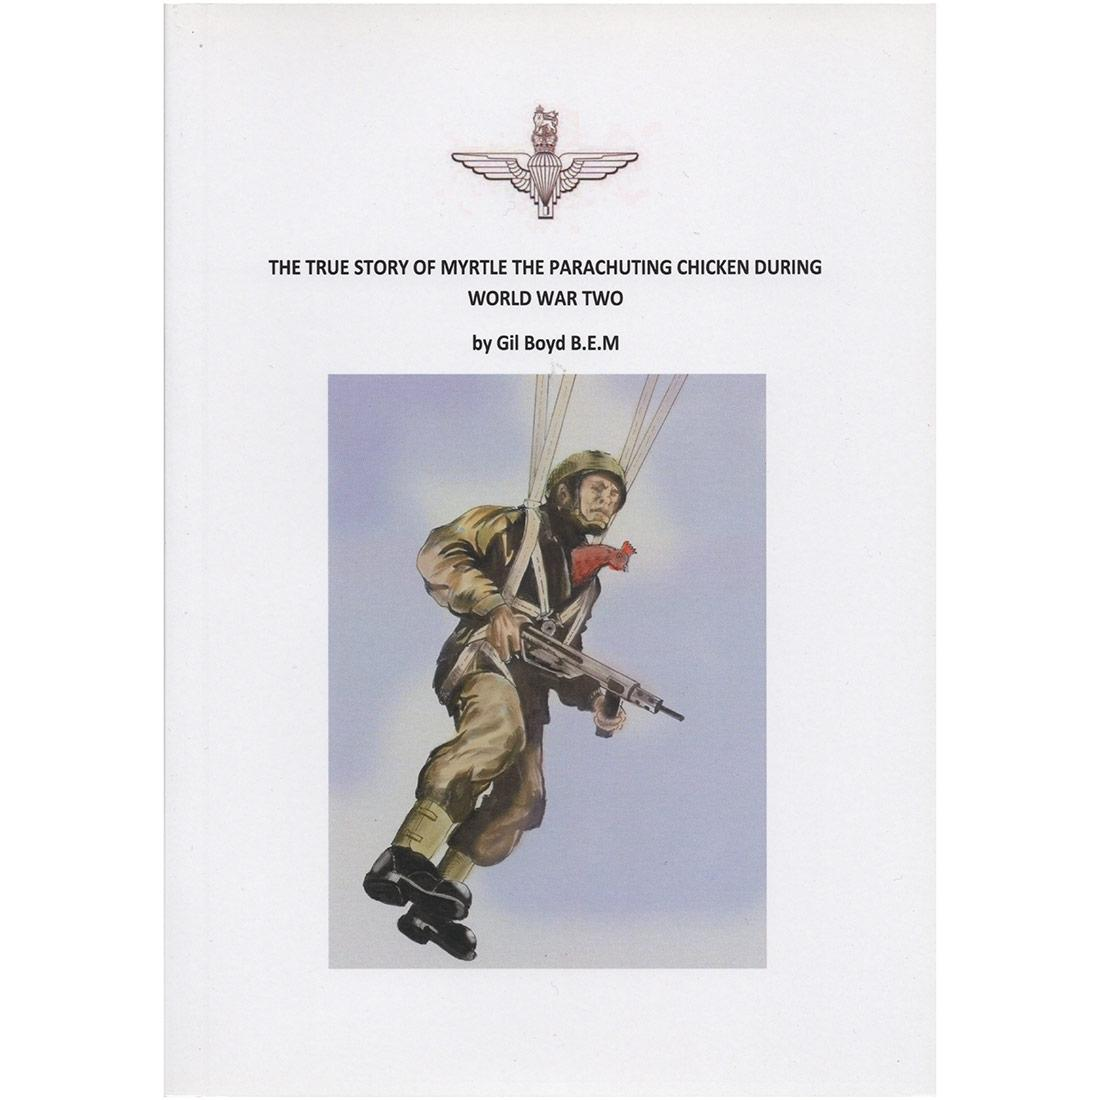 The True Story of Myrtle the Parachuting Chicken During World War Two by Gil Boyd (Book)